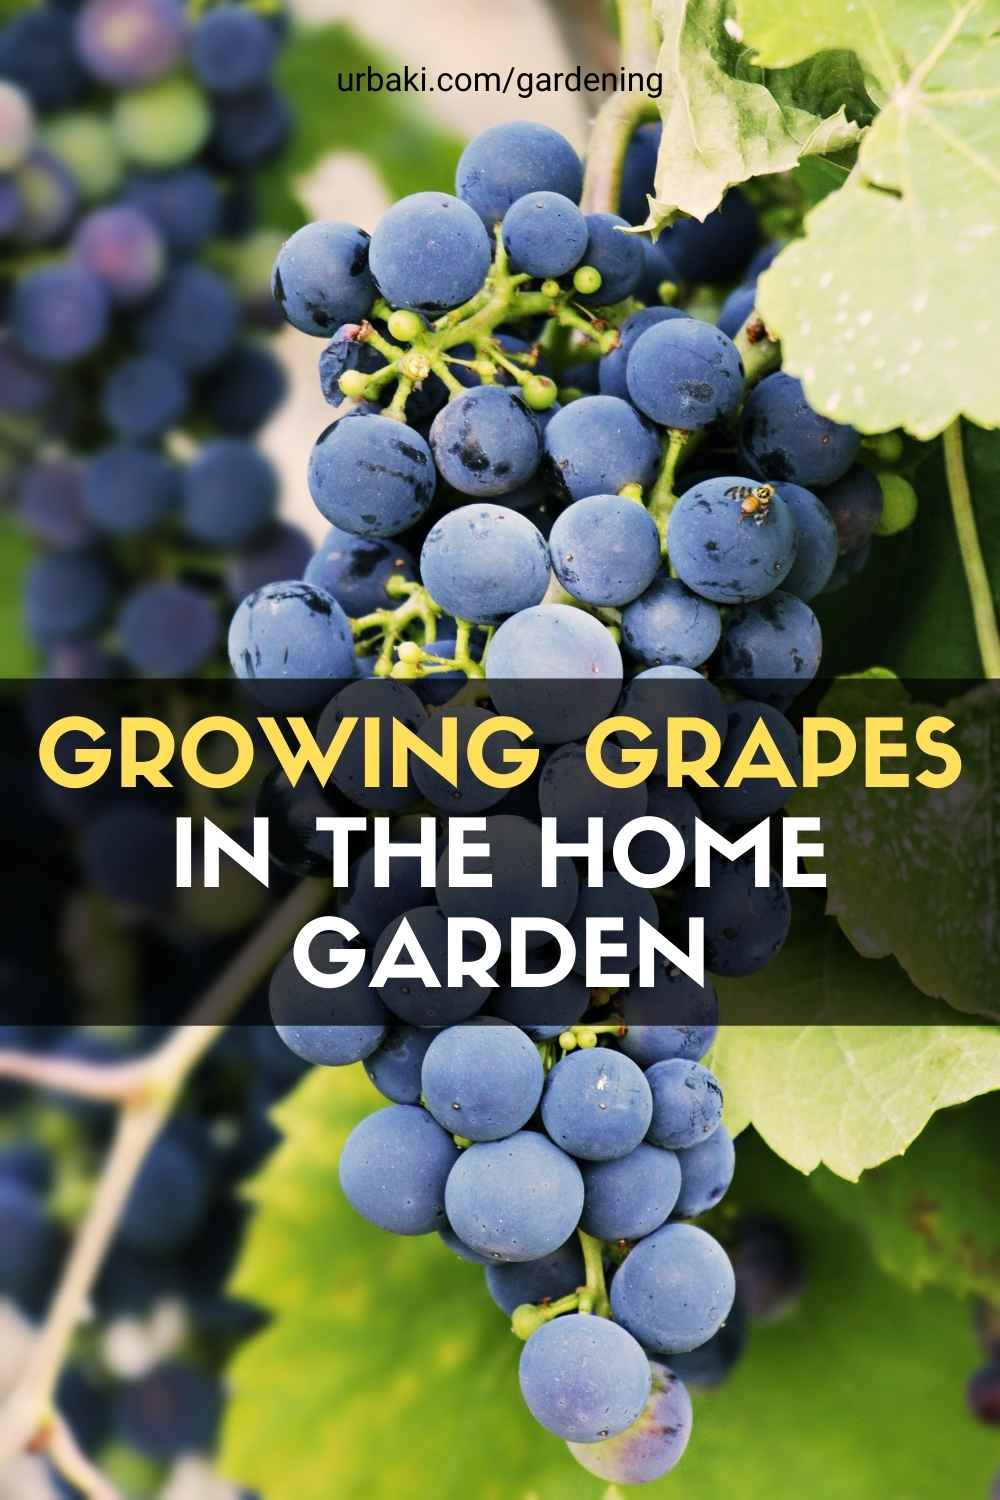 Growing Grapes